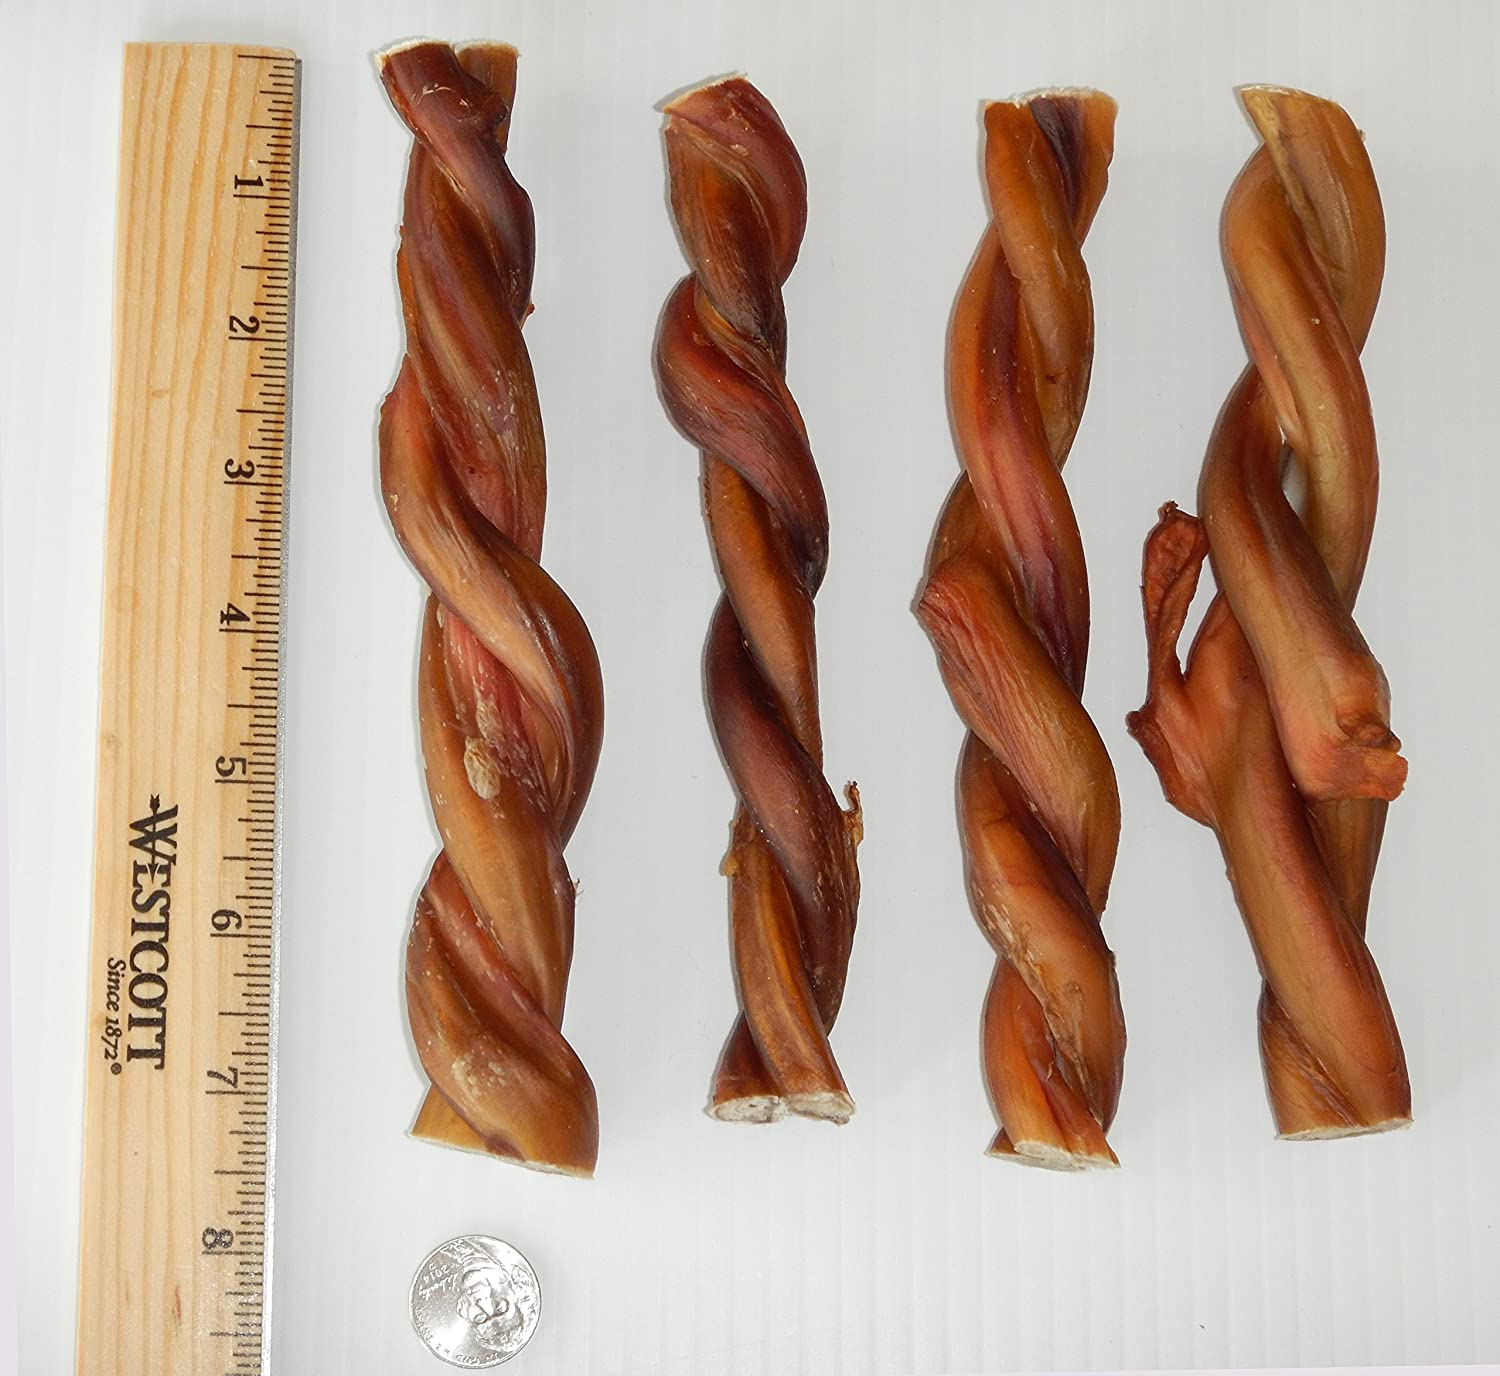 # 1 Texas Sized jumbo braided bully sticks for dogs, 12 or 6 Inch, 100% all natural dog treats sourced and made in USA - Freshly cooked from Texas with Amazing Smoky Flavor from Jack's Premium!! 4PK Jack's Premium